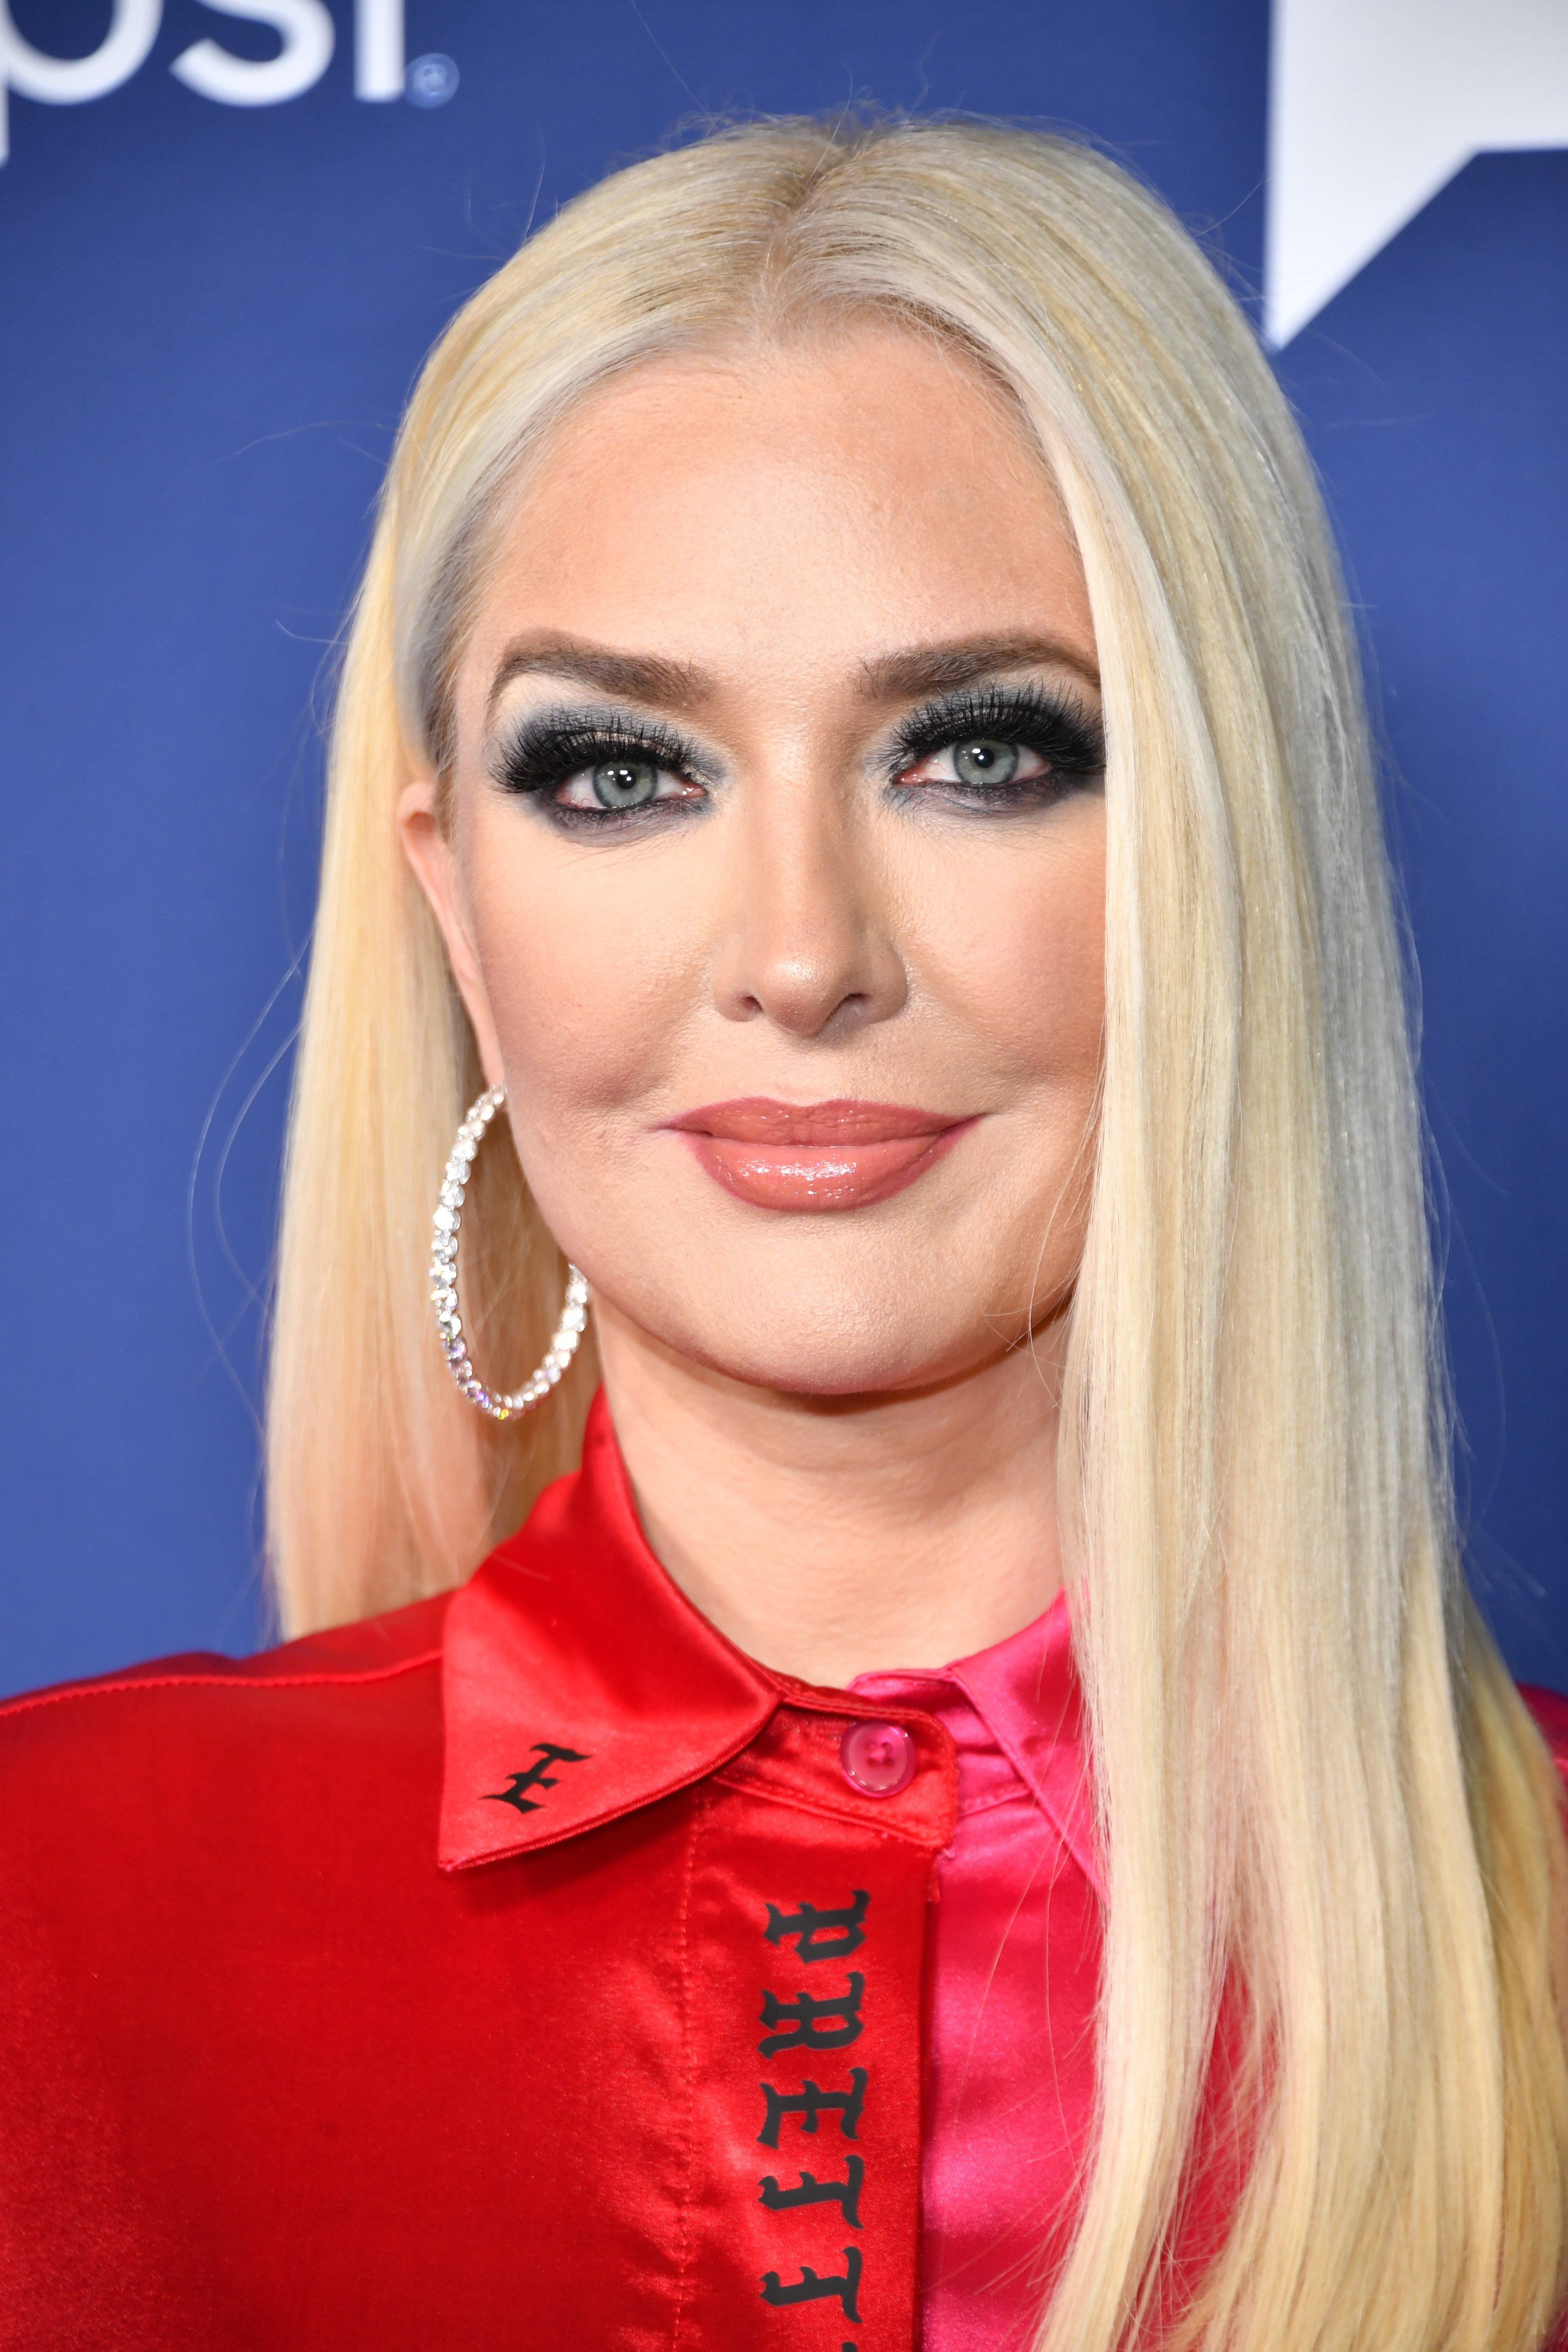 Erika Girardi at the opening night of BravoCon in November 2019 in New York   Source: Getty Images